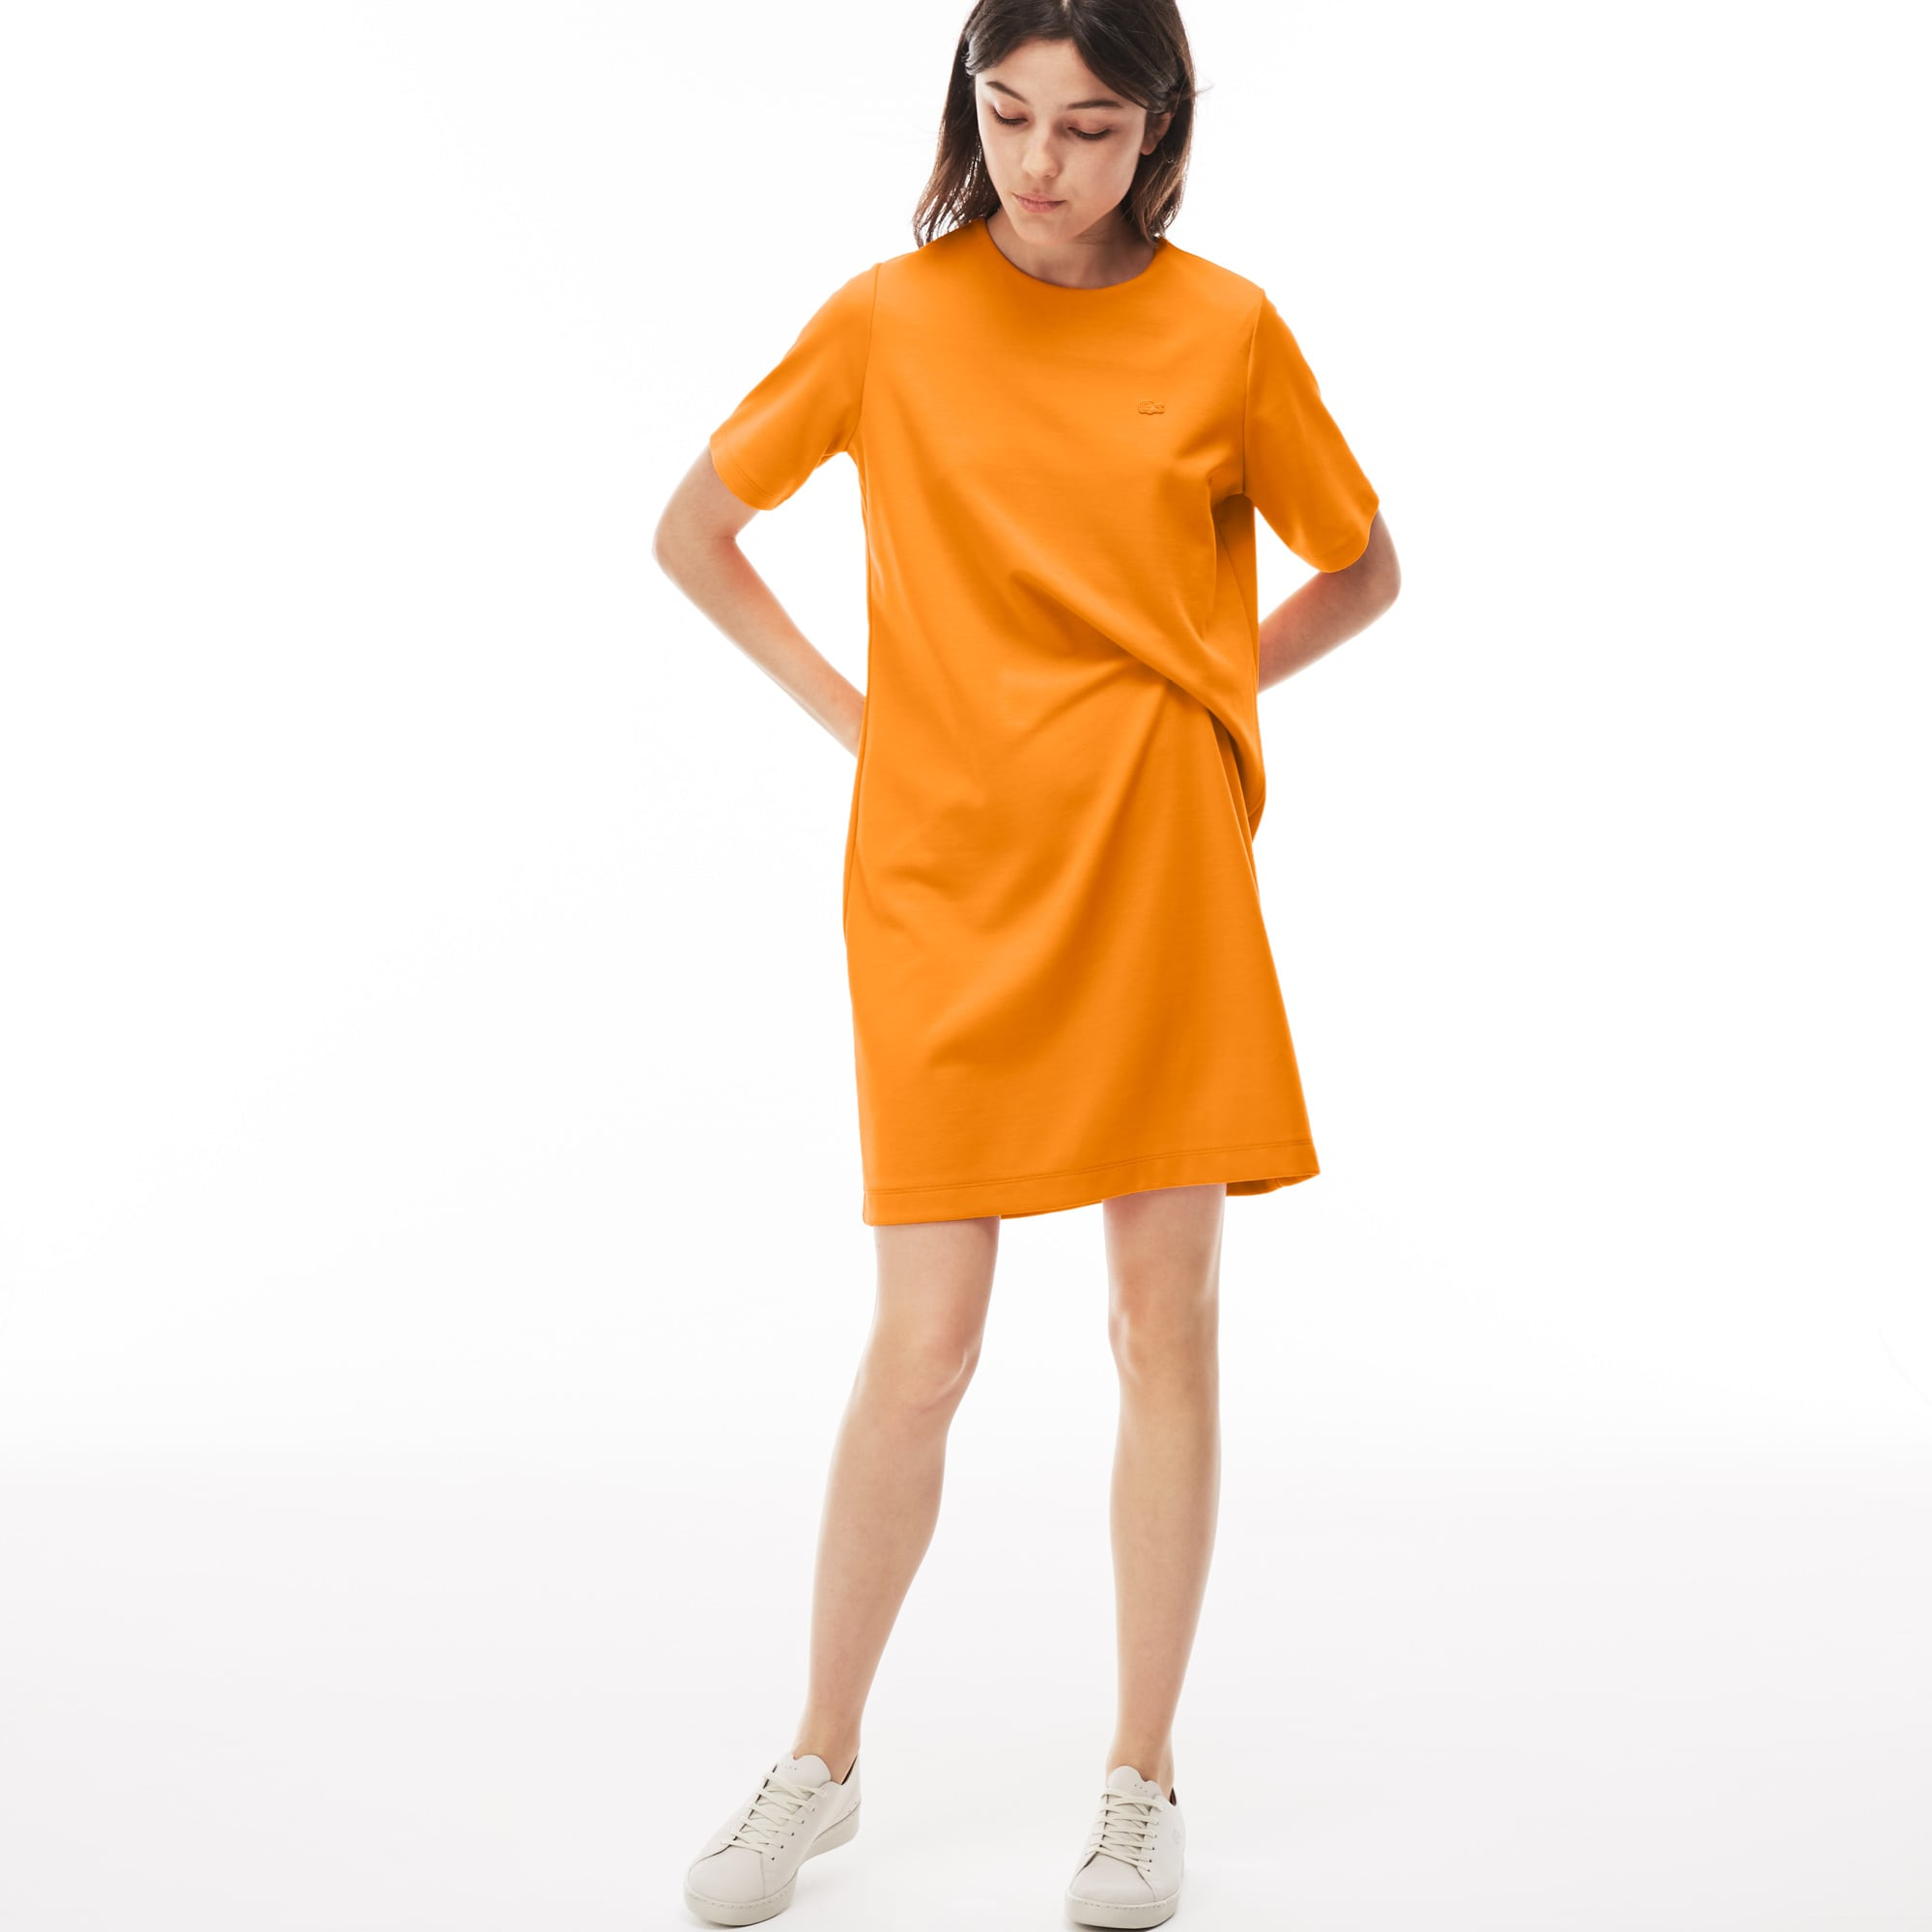 Women's Lacoste LIVE Cotton Jersey Asymmetrical Dress